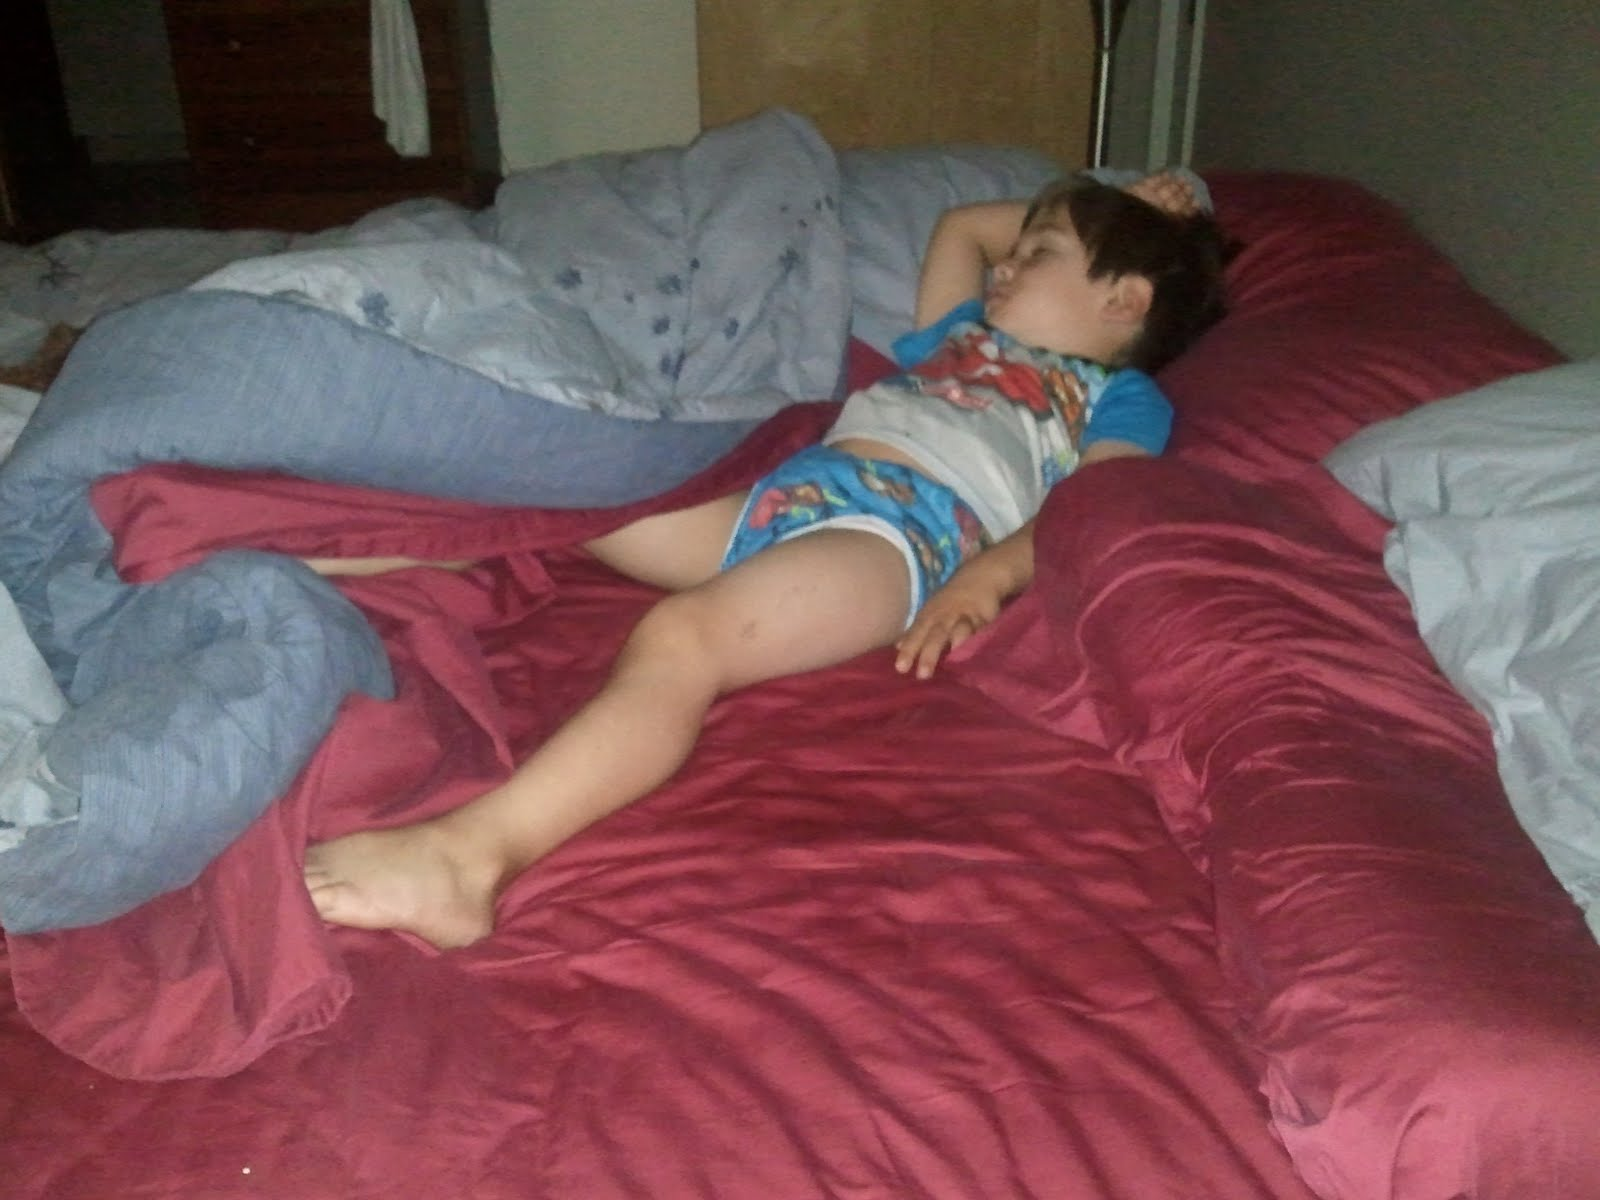 Boy in picture sleeping underwear